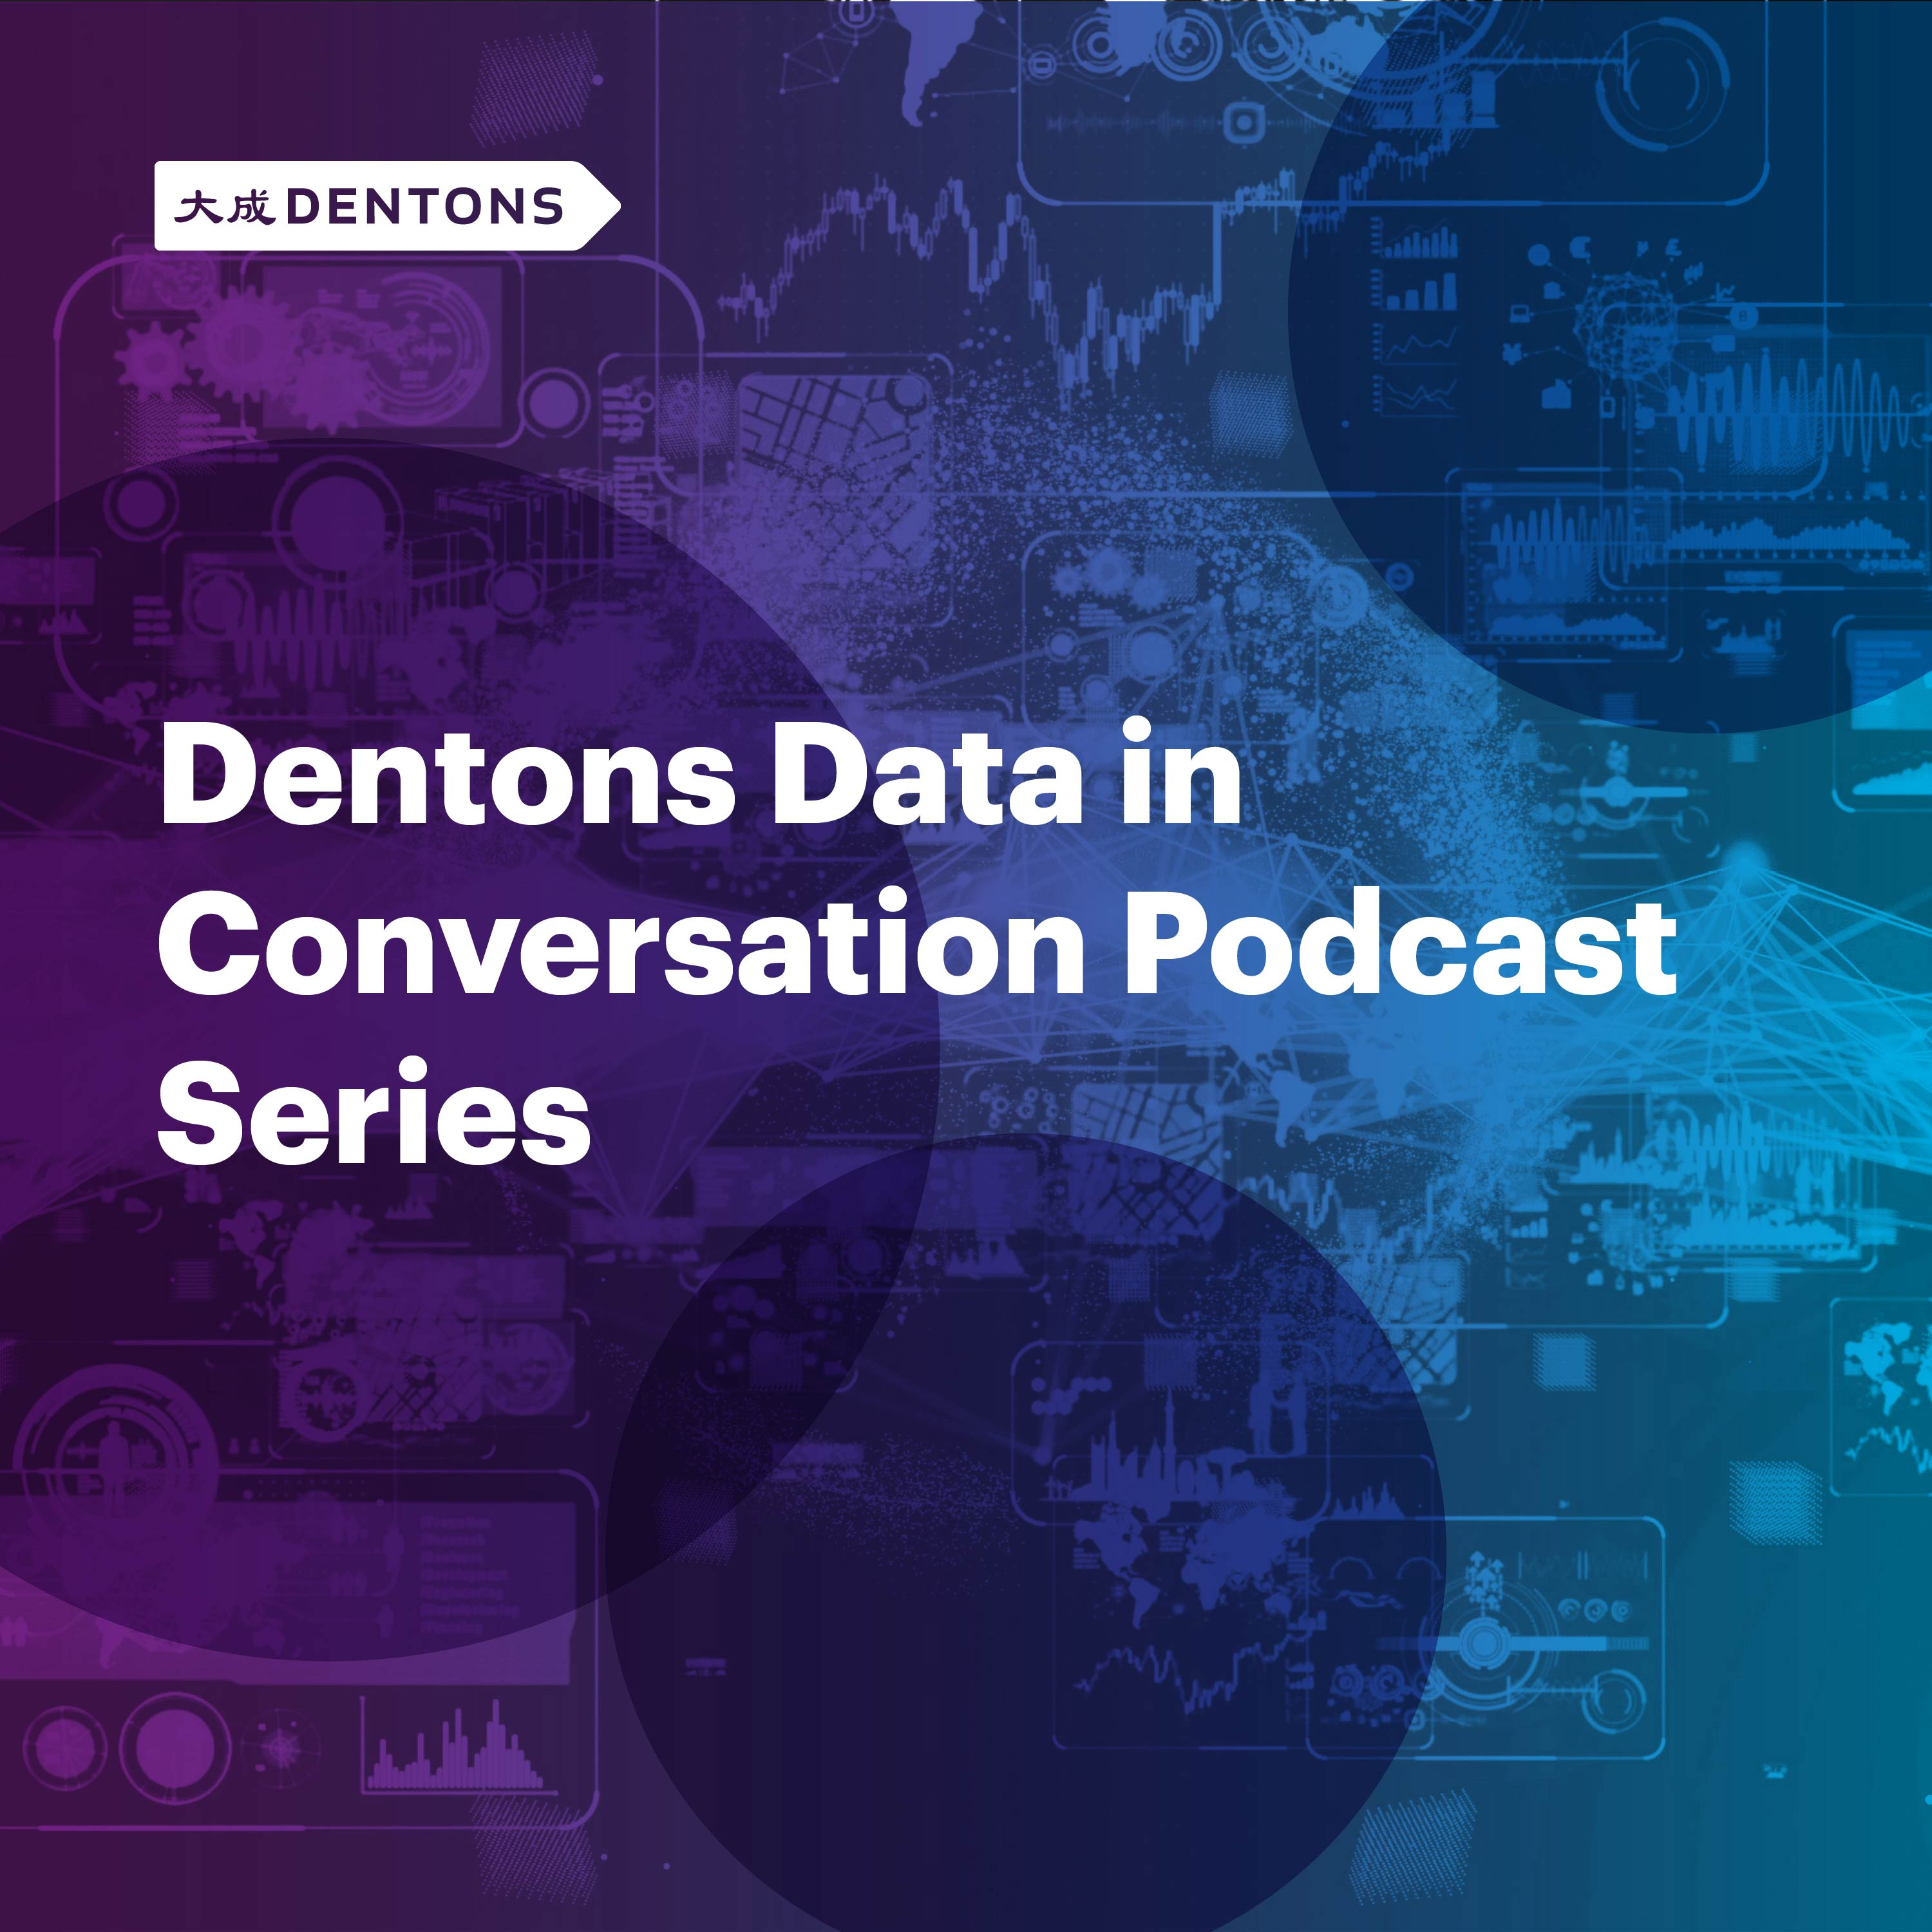 Artwork for podcast Dentons Data In Conversation Podcast Series